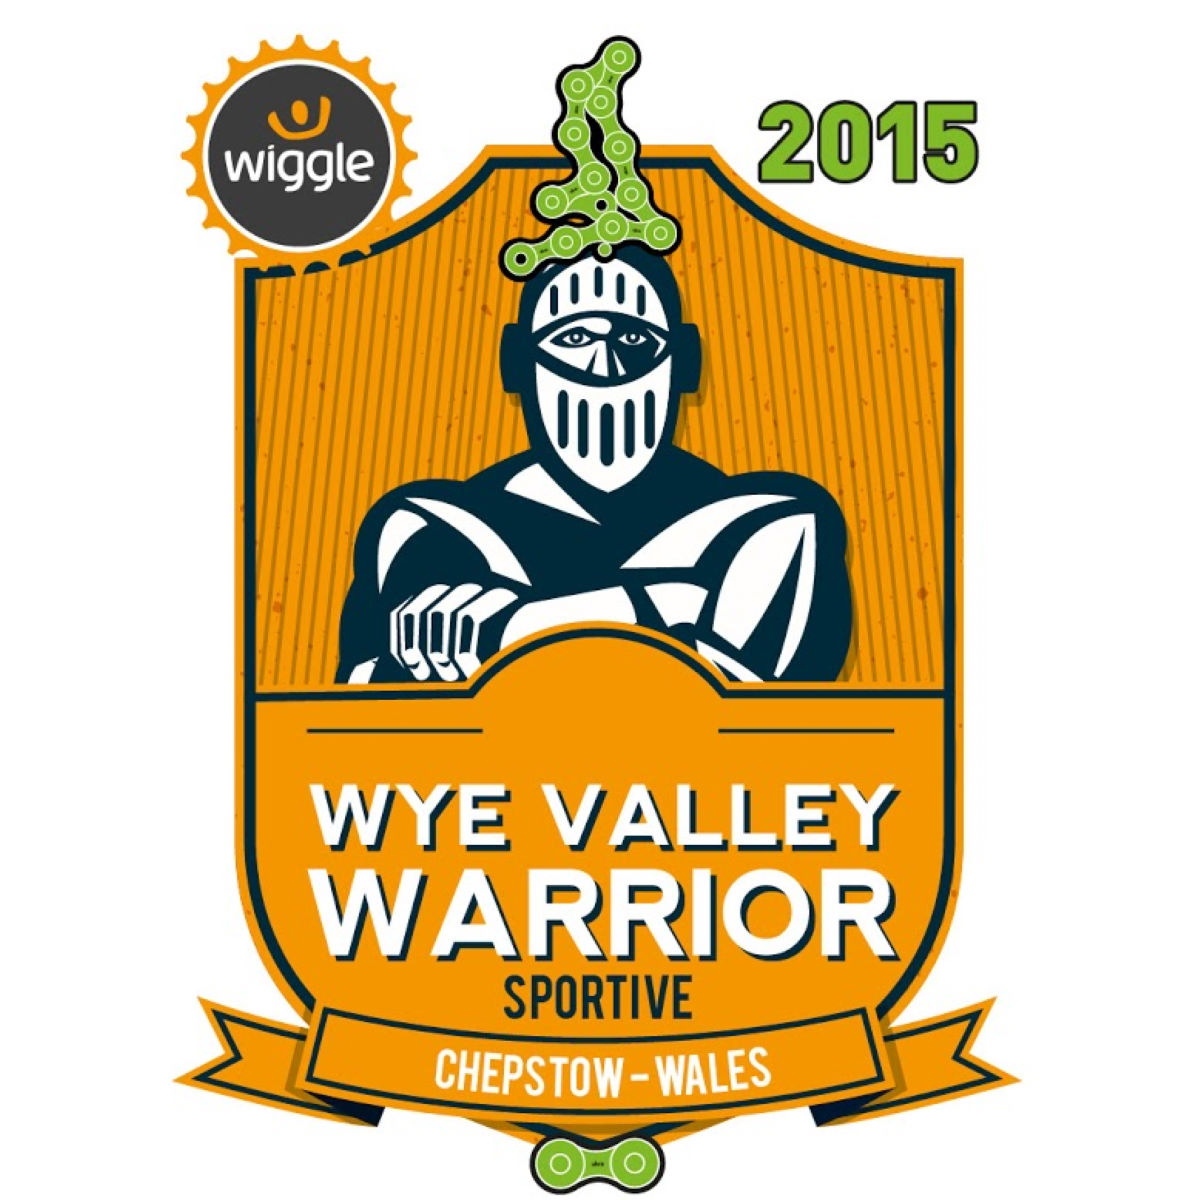 Wiggle Super Series Wye Valley Warrior 2015